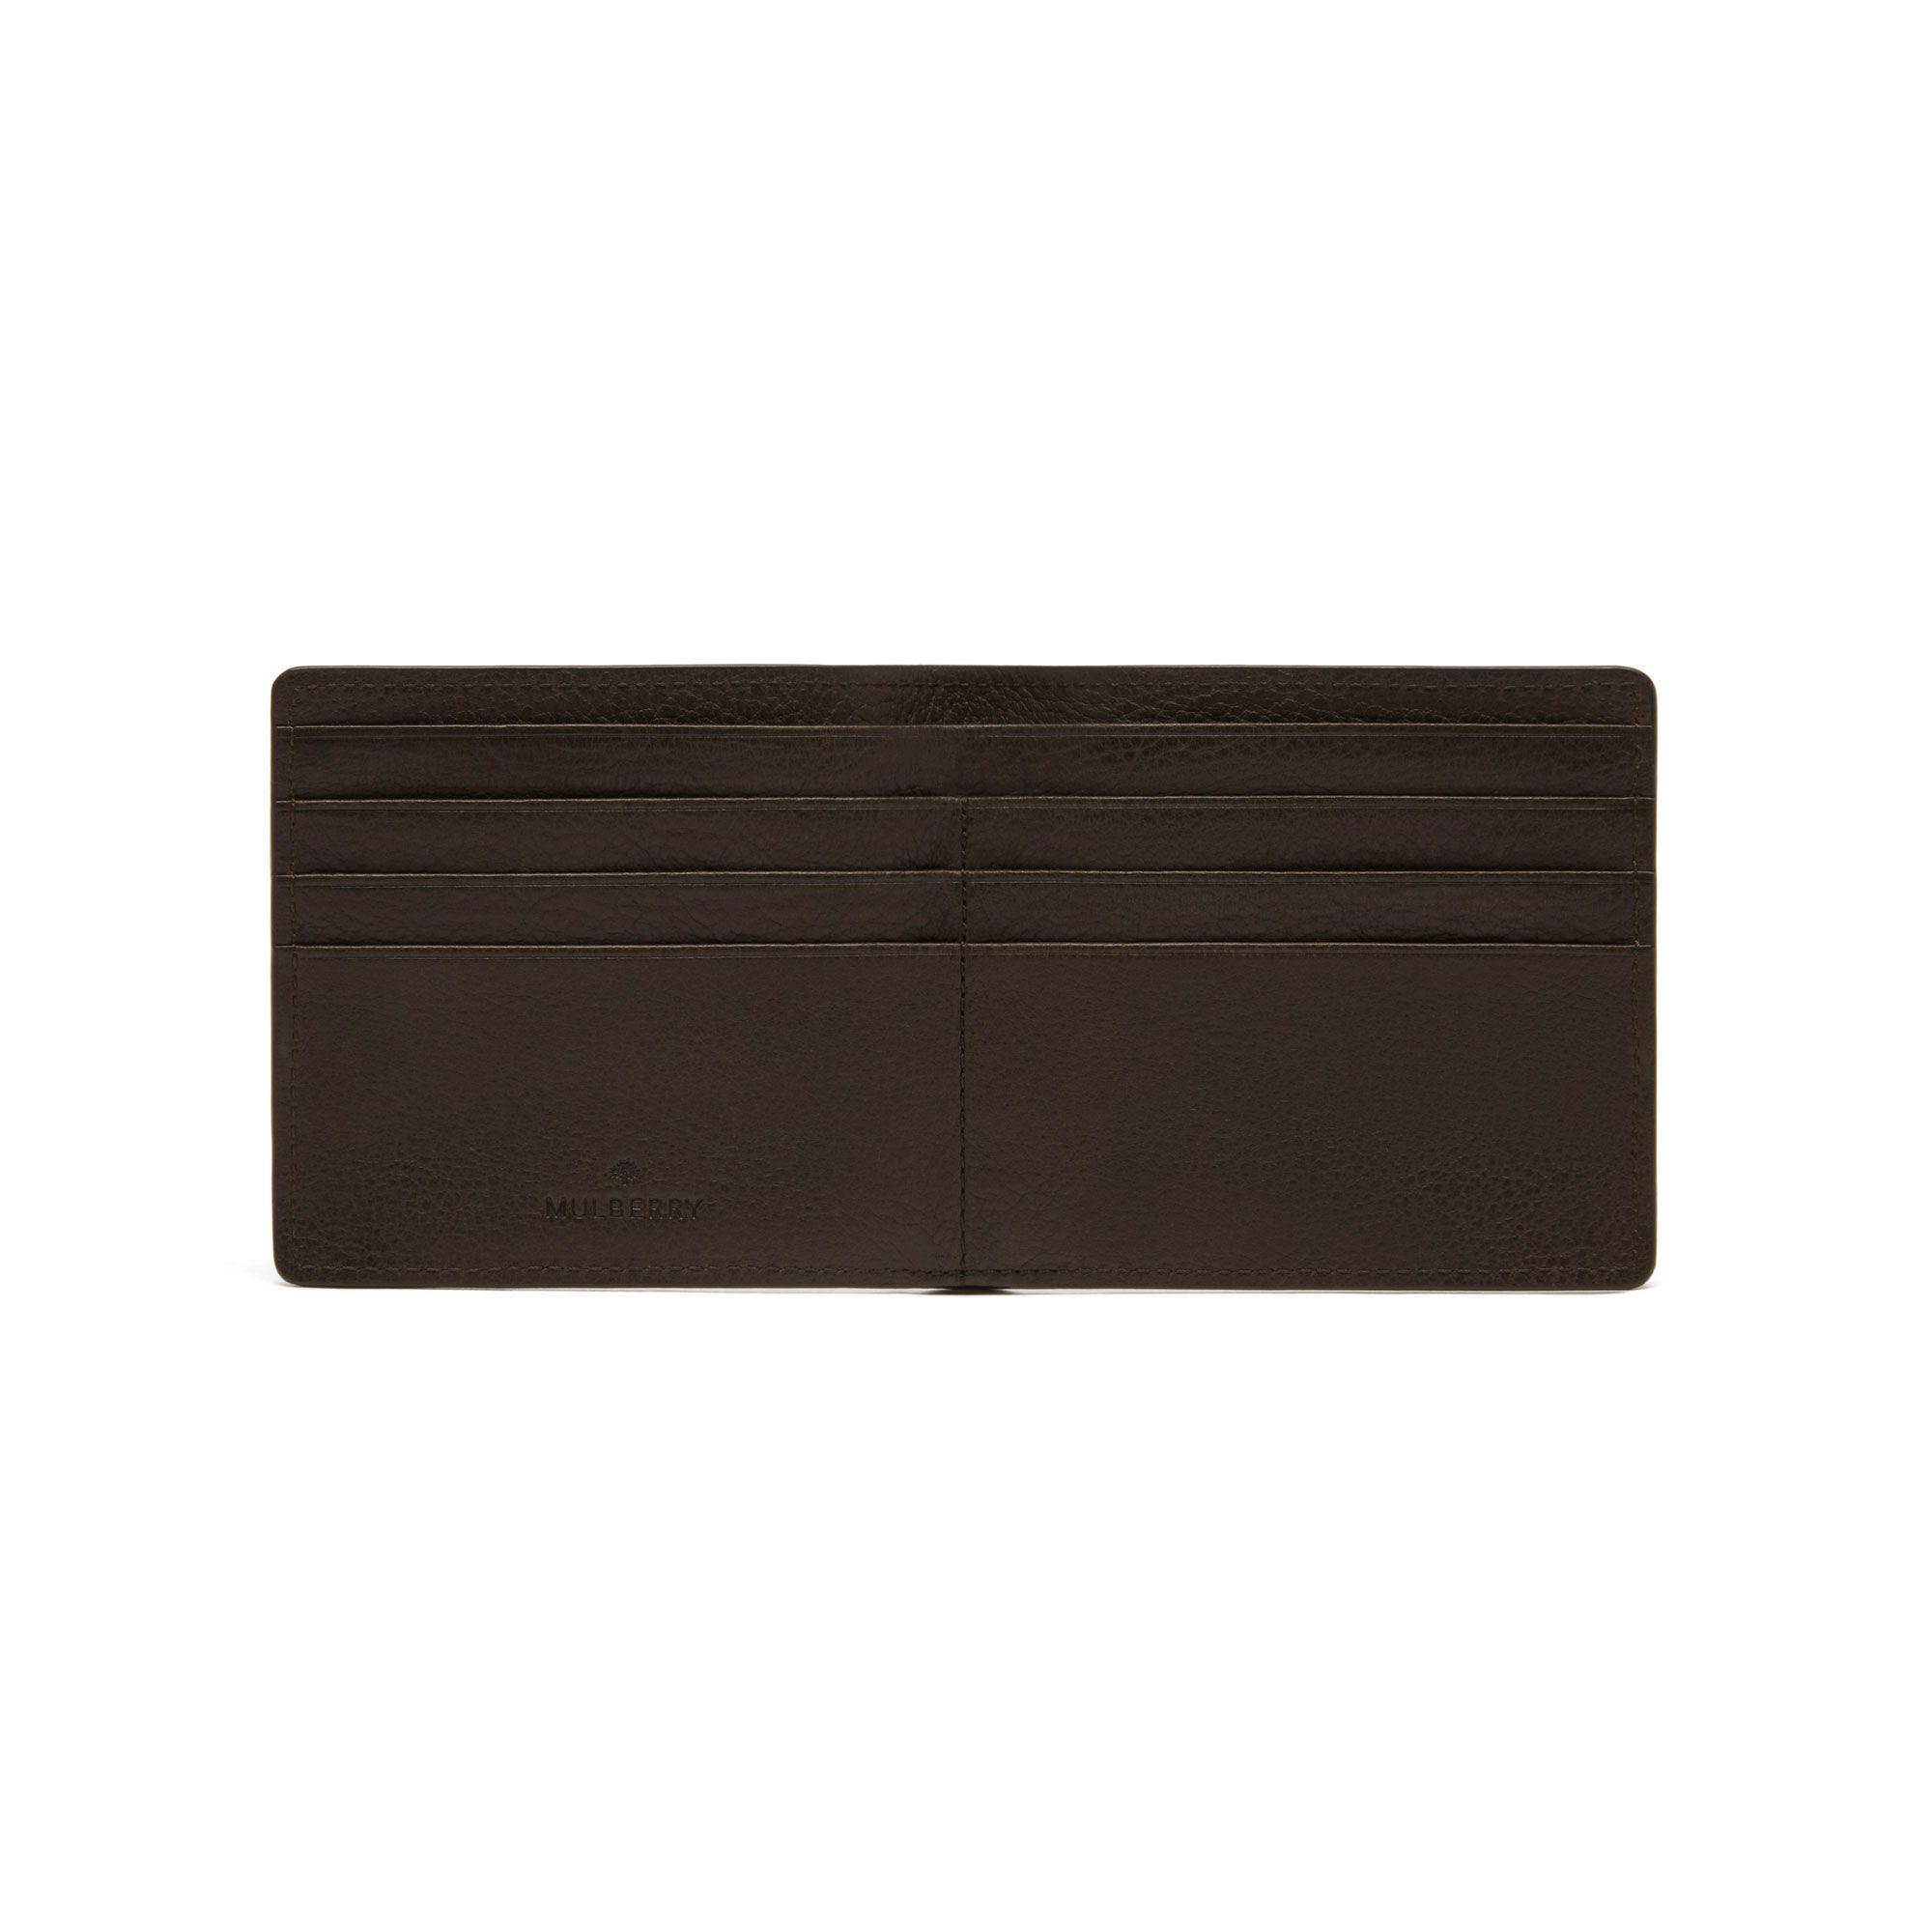 36ce5bd1fbd19 sale lyst mulberry slim 6 card wallet in brown for men 2e9f2 cf095